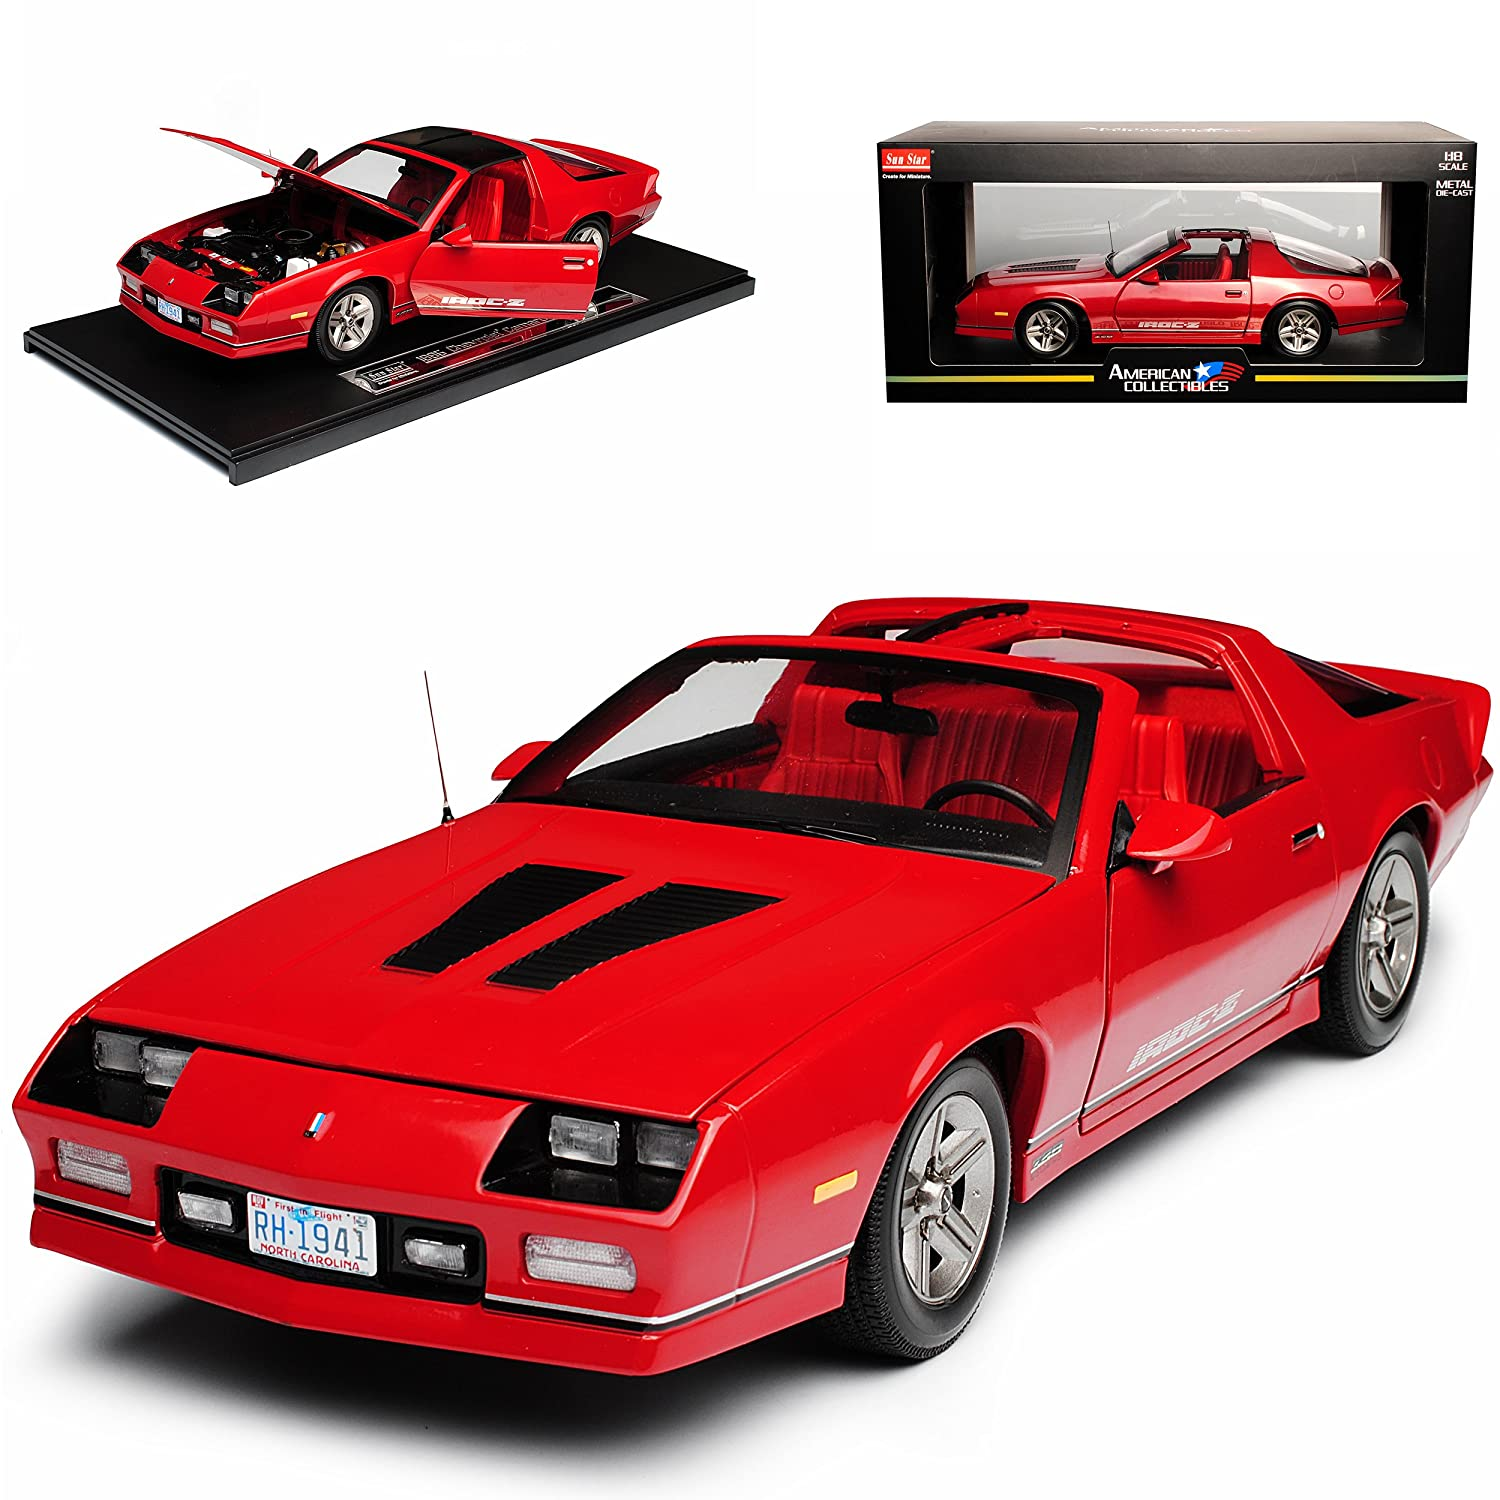 Sun Star Chevrolet Chevy Chevy Camaro IROC-Z Coupe Rot 3. Generation 1982-1993 1/18 Modell Auto